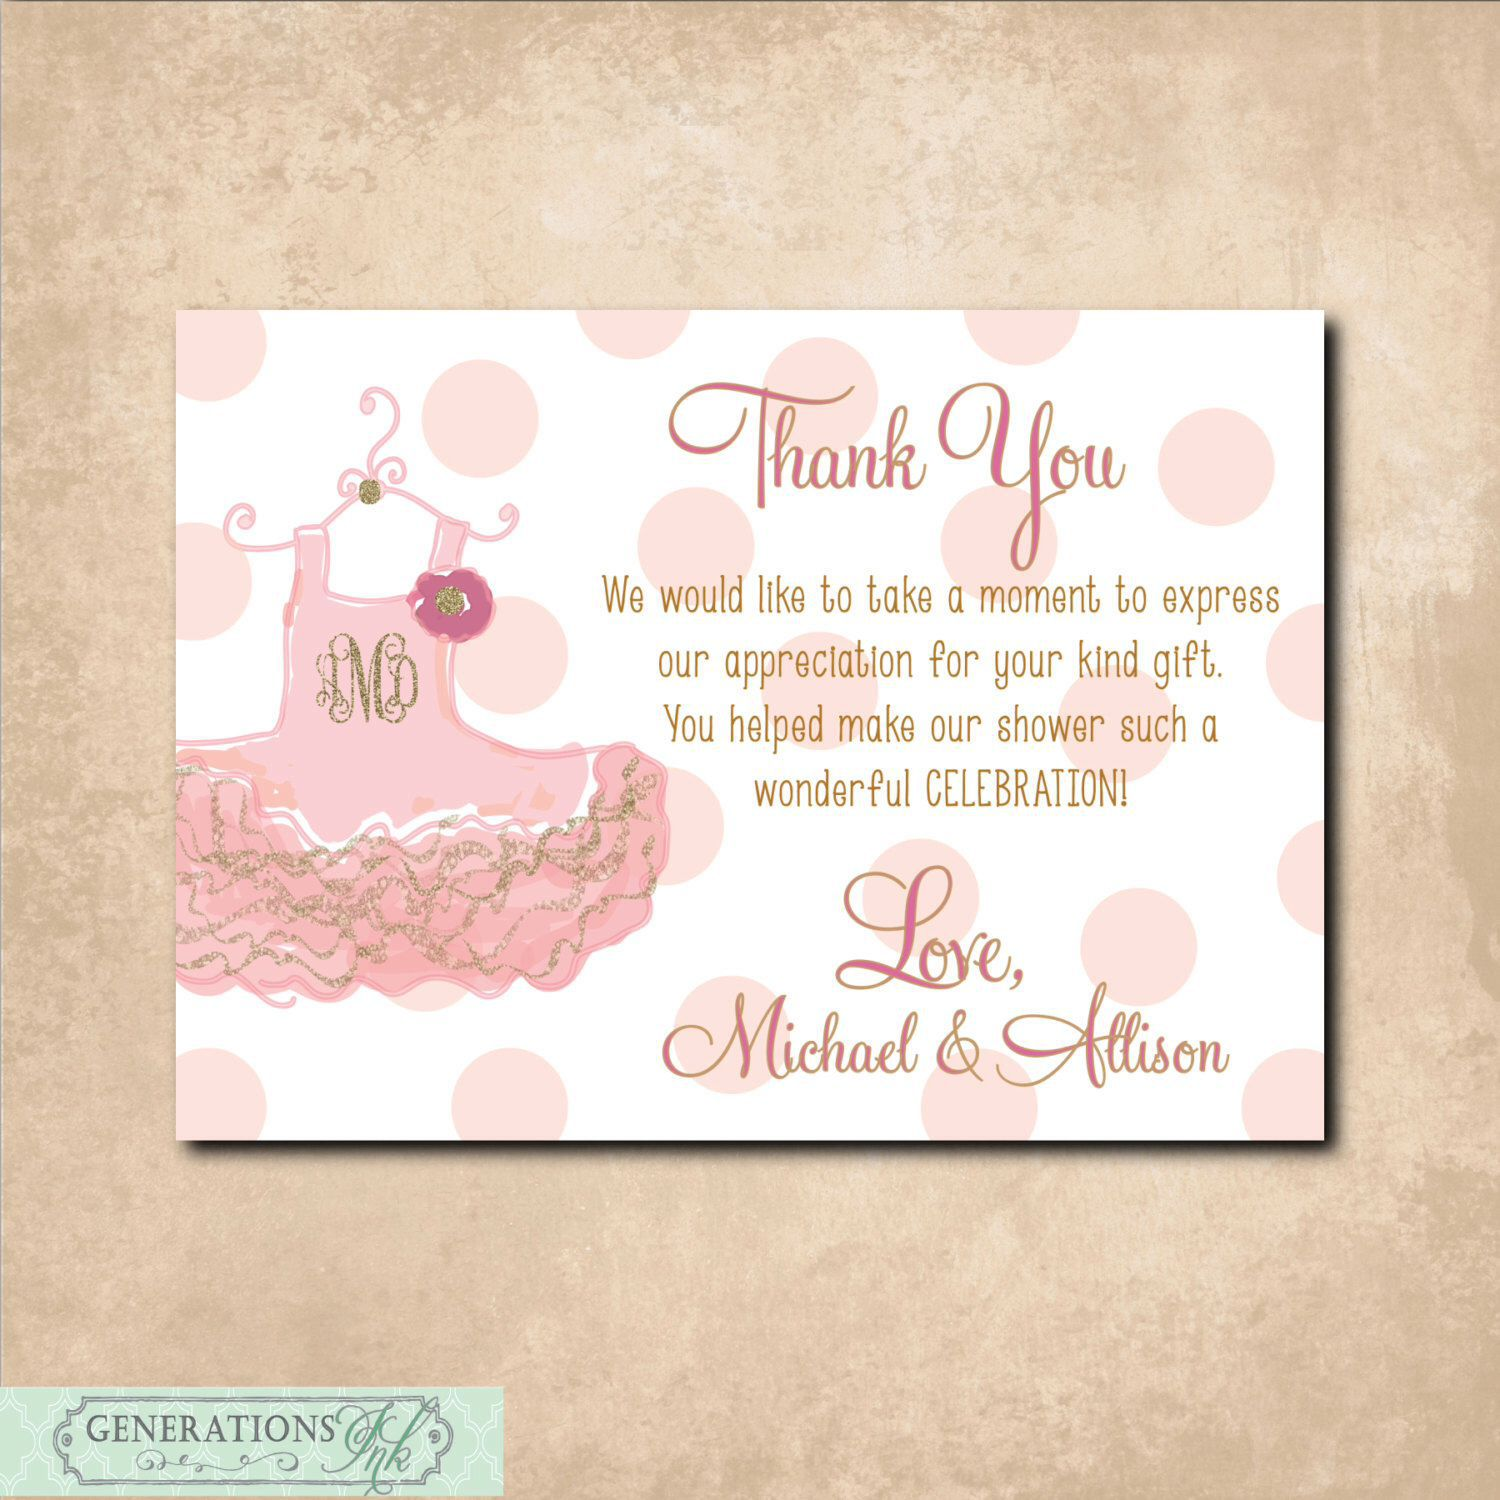 001 Imposing Thank You Note Template Baby Shower Inspiration  Card Free Sample For Letter GiftFull